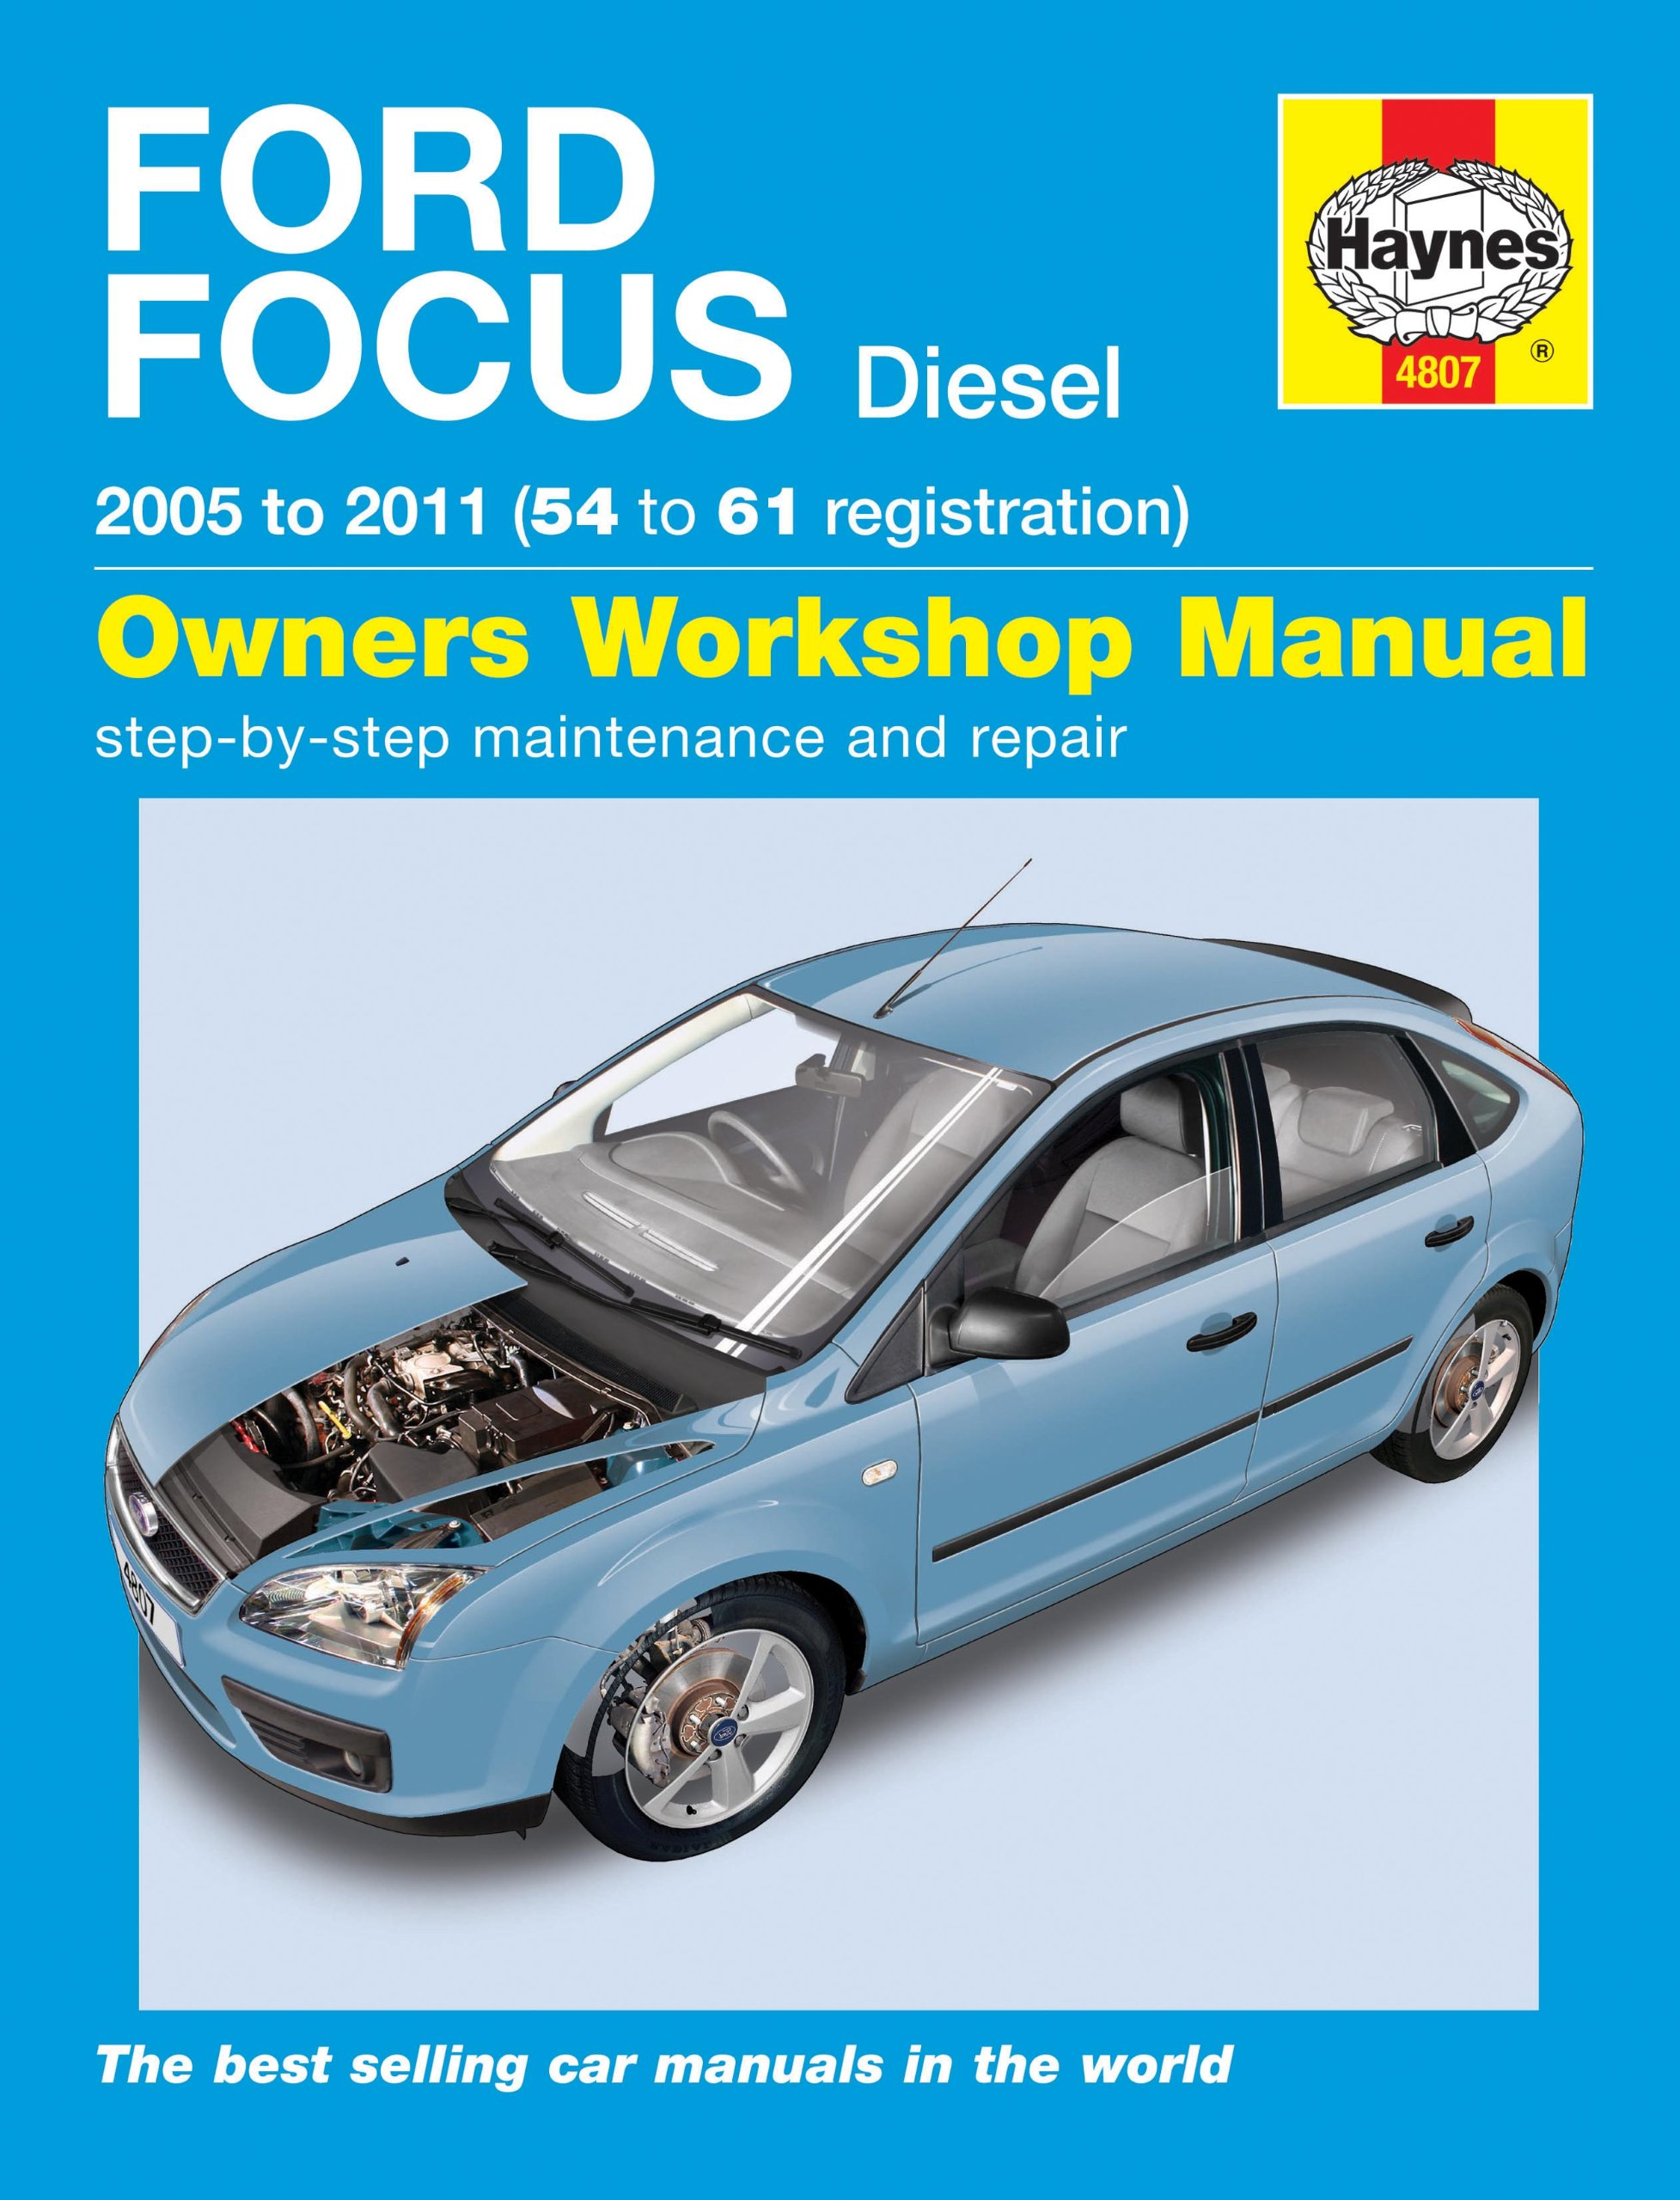 Ford Focus Diesel Service and Repair Manual: 2005-2011 (Haynes Service and Repair  Manuals): 9780857337009: Amazon.com: Books